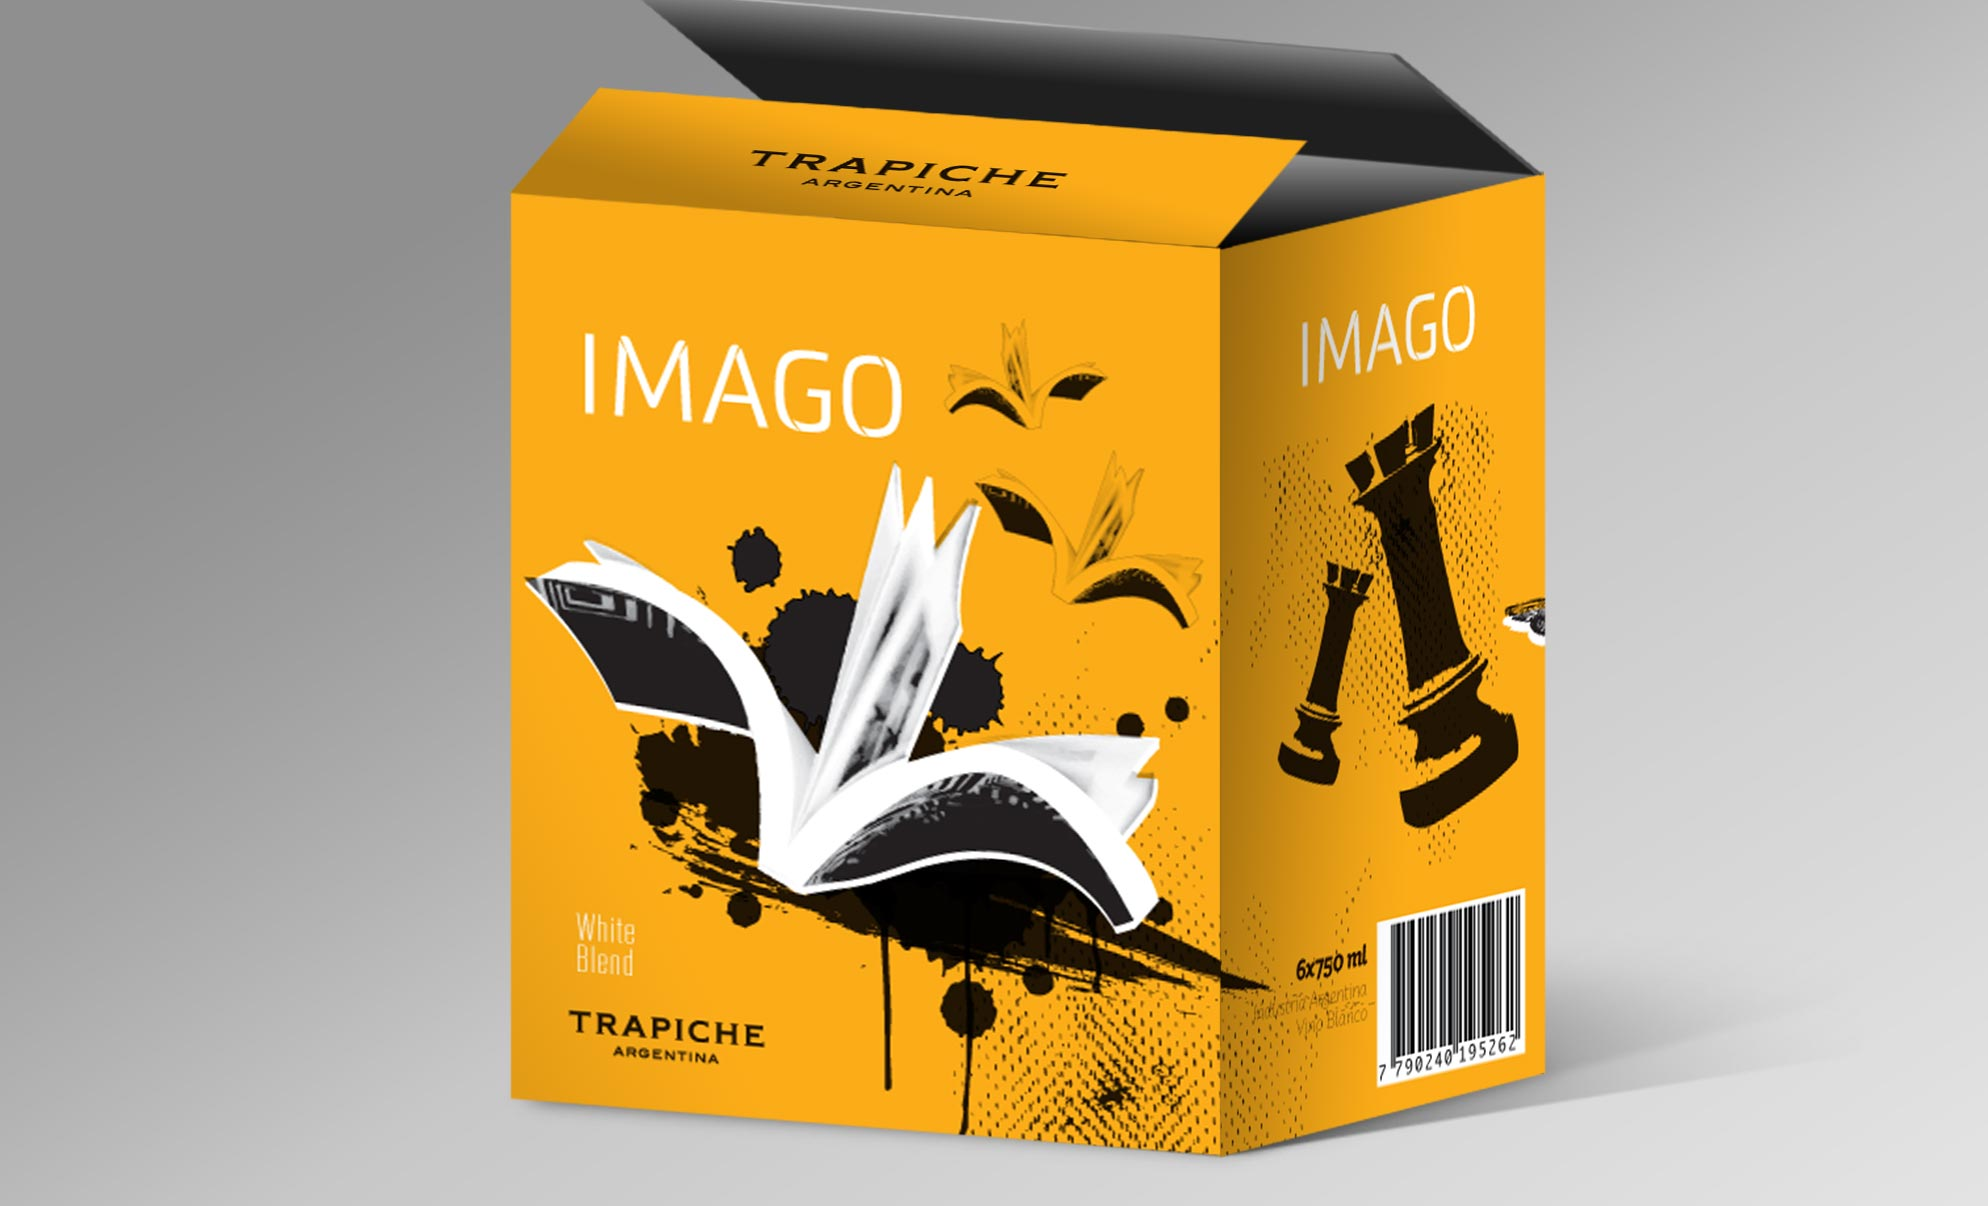 Peñaflor Trapiche Imago Wine Packaging White Blend